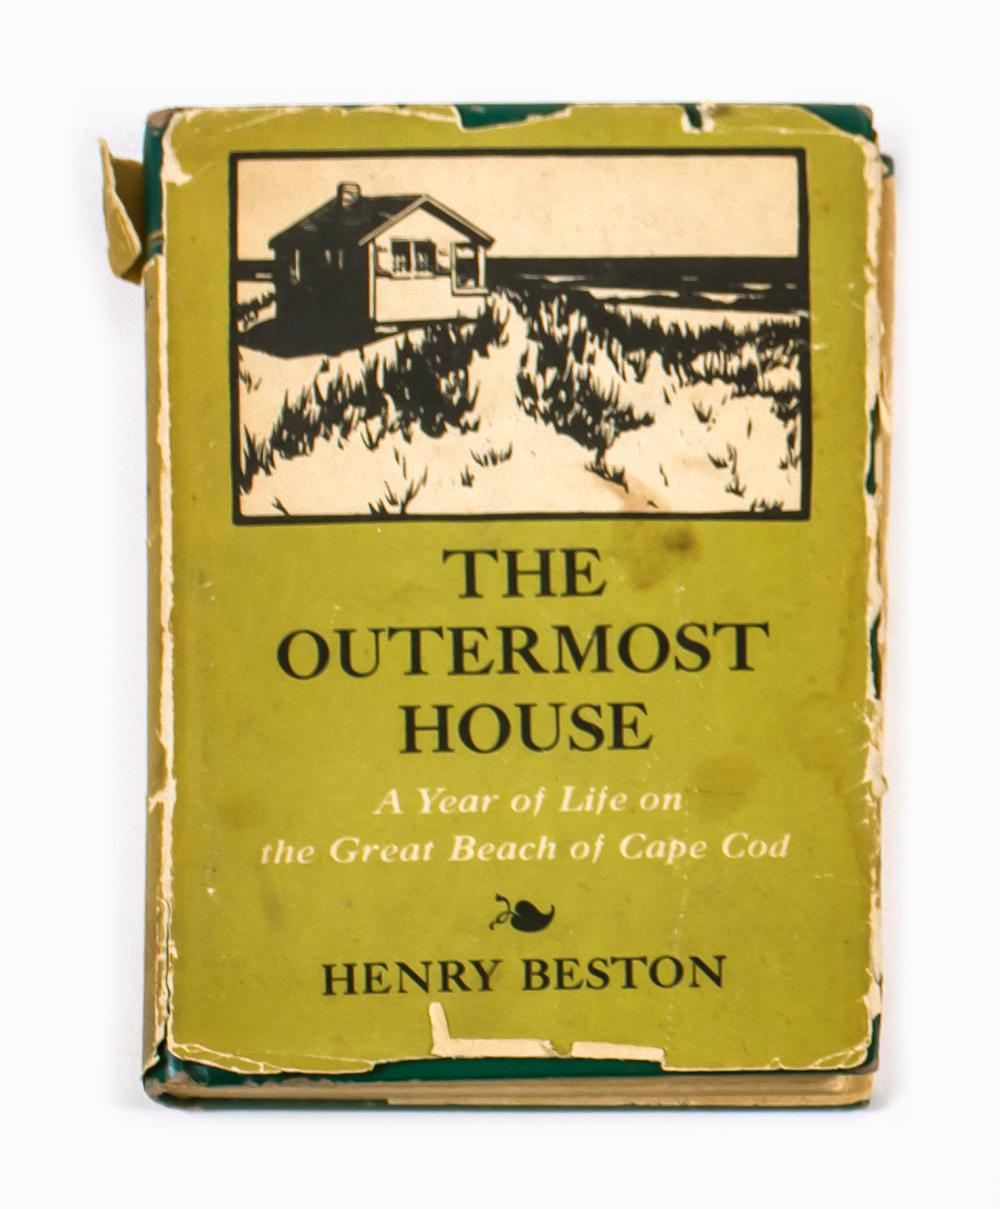 COPY OF THE OUTERMOST HOUSE By Henry Beston. Fully titled The Outermost House: A Year of Life on the Great Beach of Cape Cod (N.Y.:...